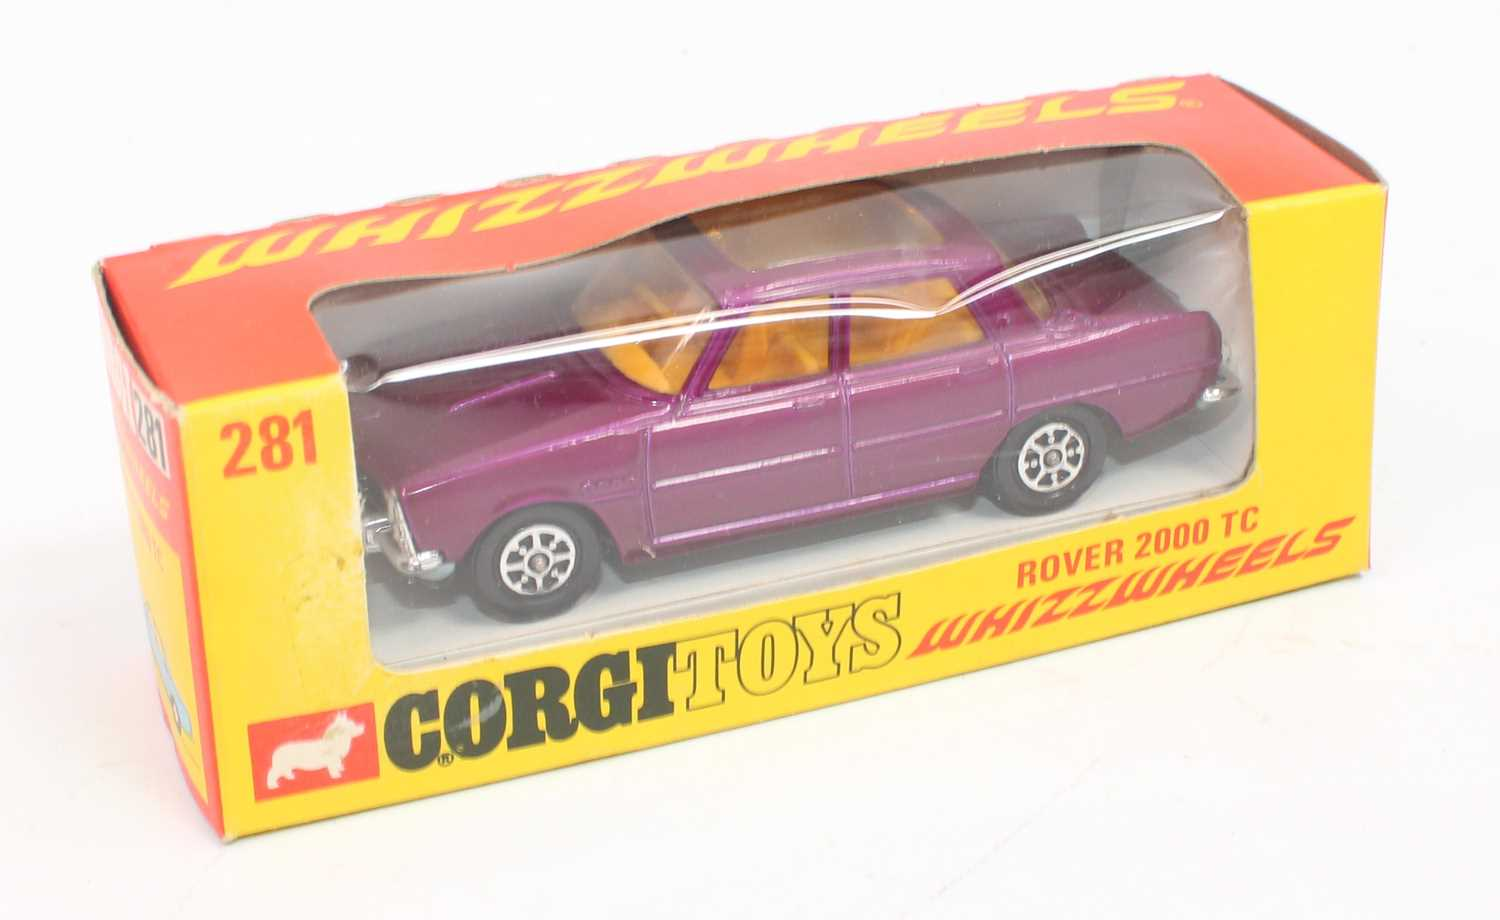 Corgi Toys 281, Rover 2000TC in purple with whizzwheels, mint condition complete with Corgi club - Image 3 of 3